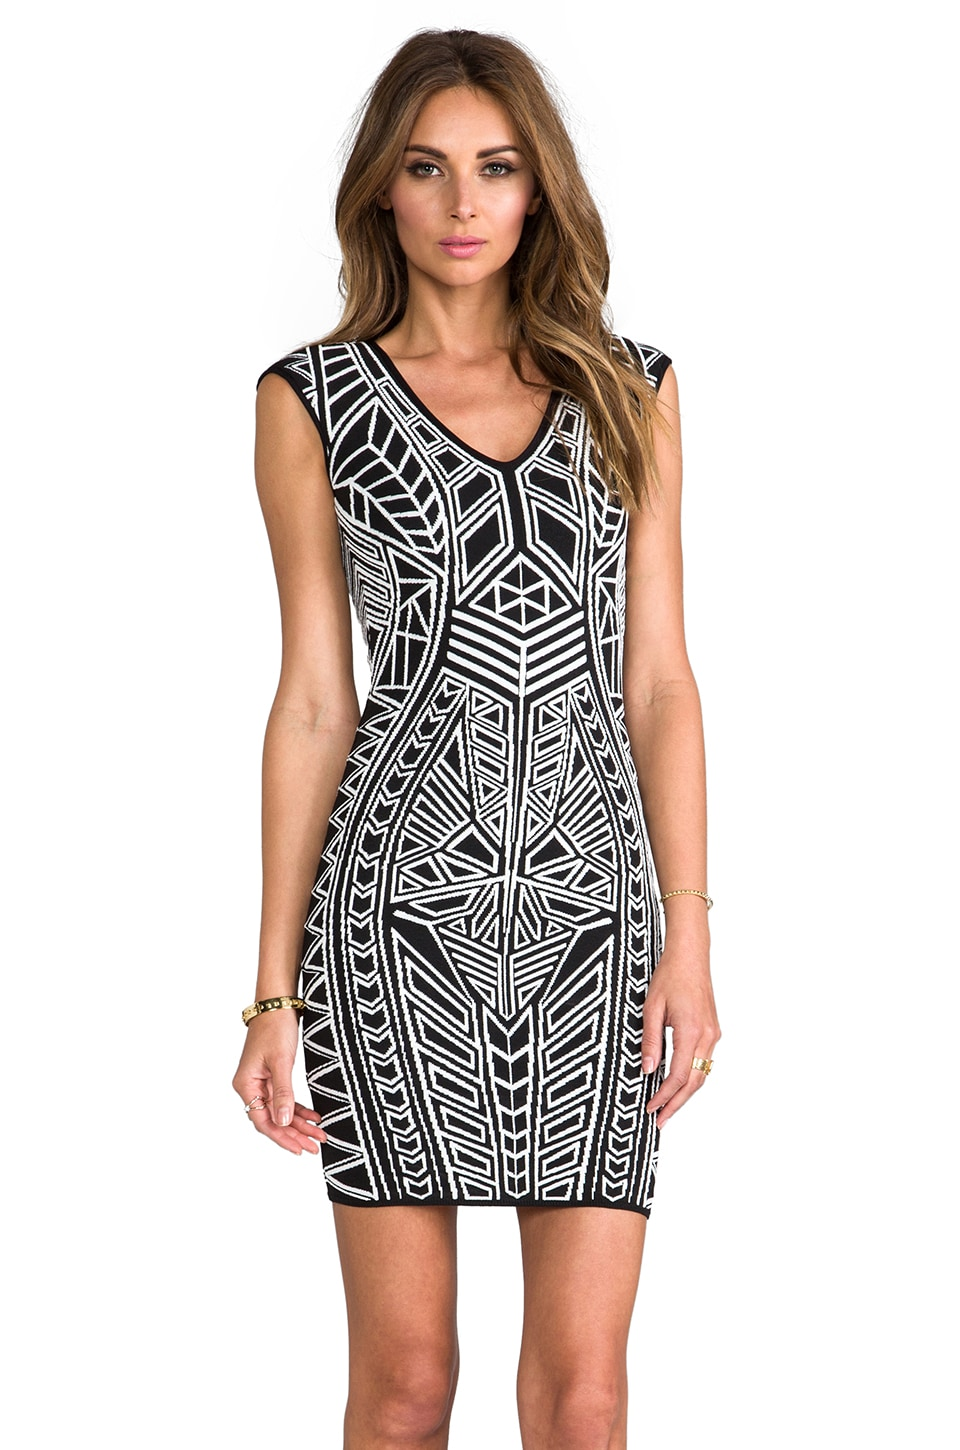 RVN Abstract 3D Jacquard Dress in White/Black